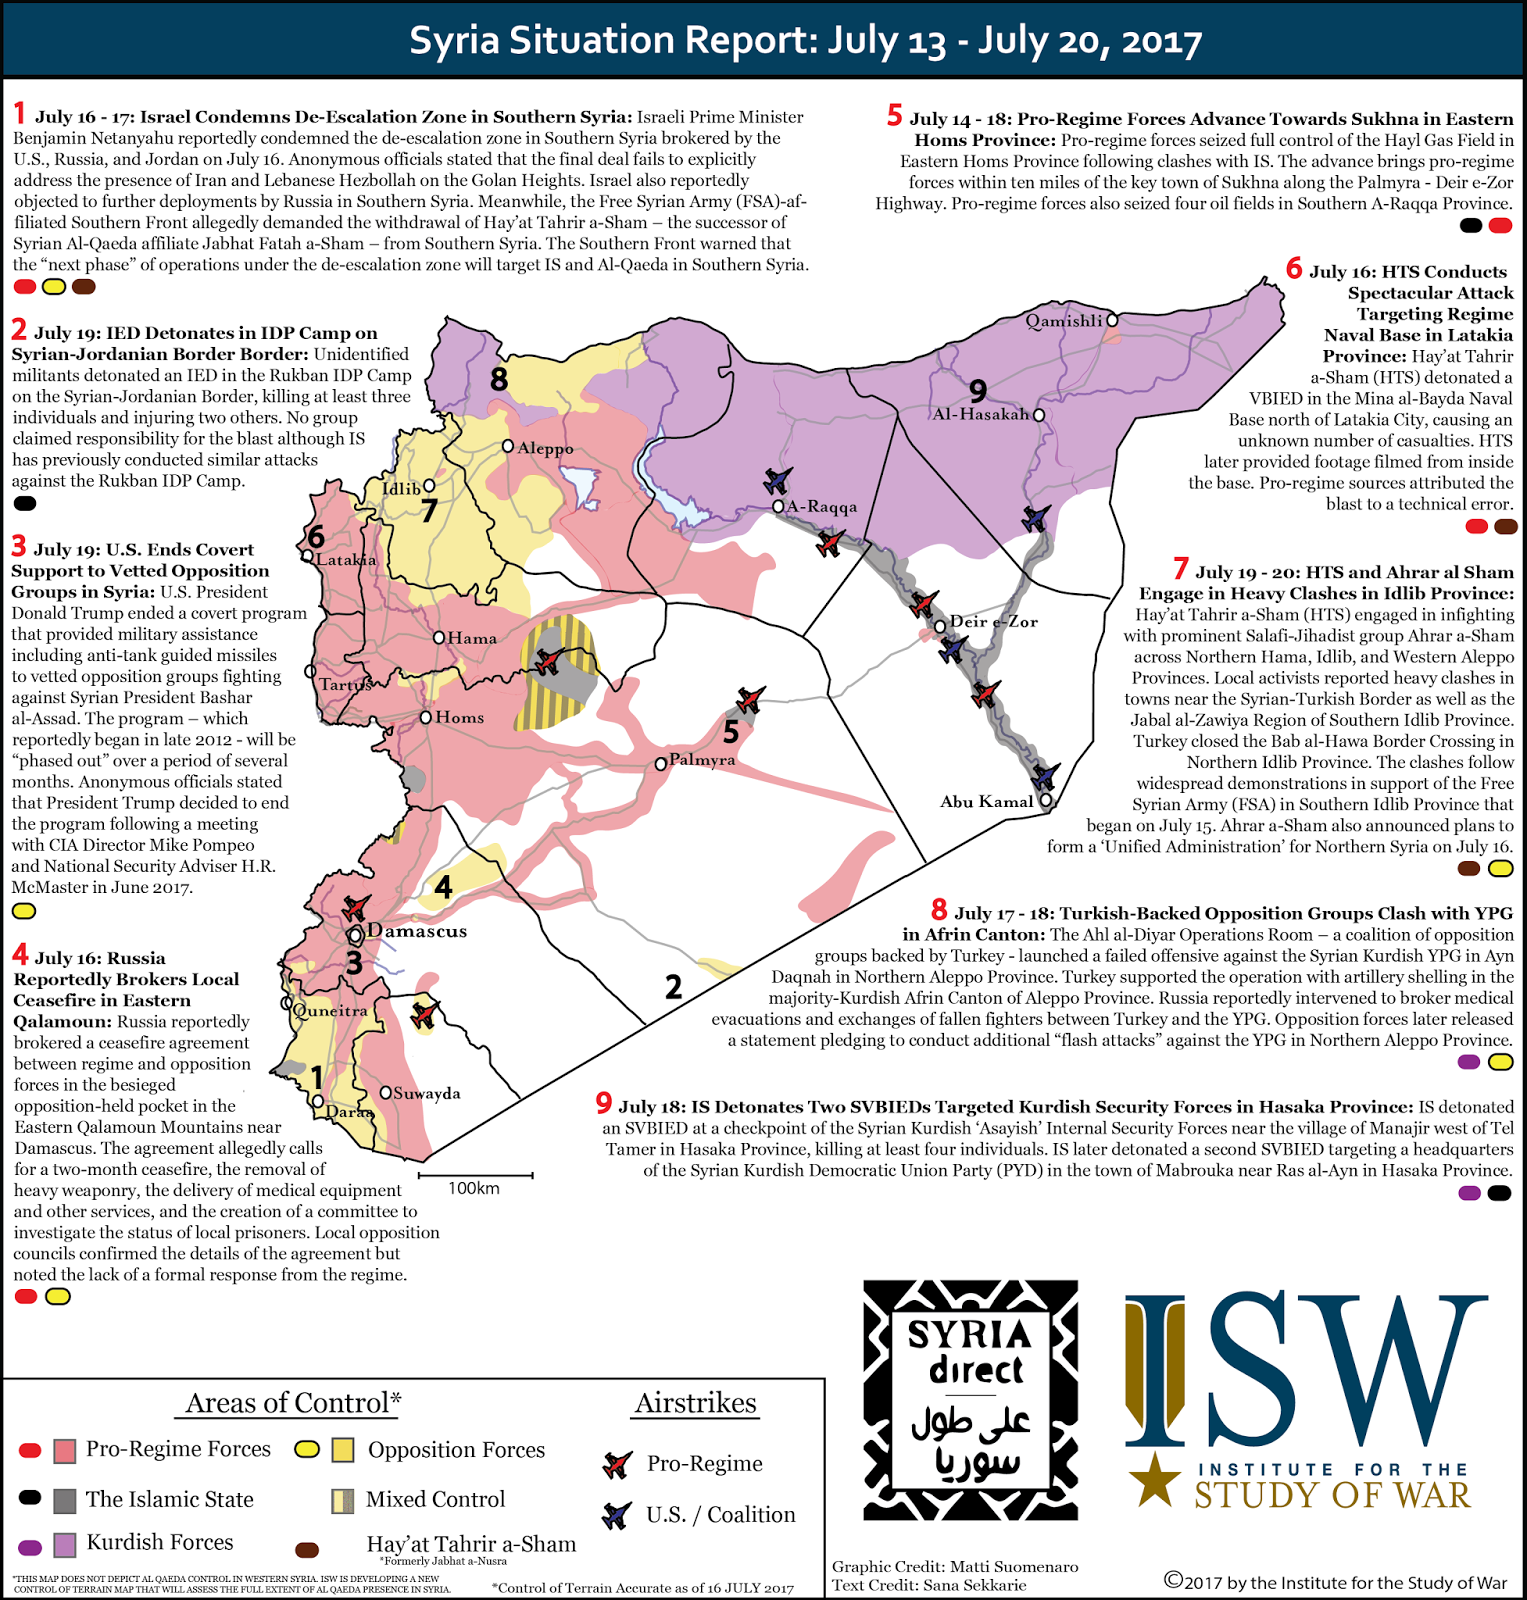 ISW Blog: Syria Situation Report: June 29 - July 27, 2017